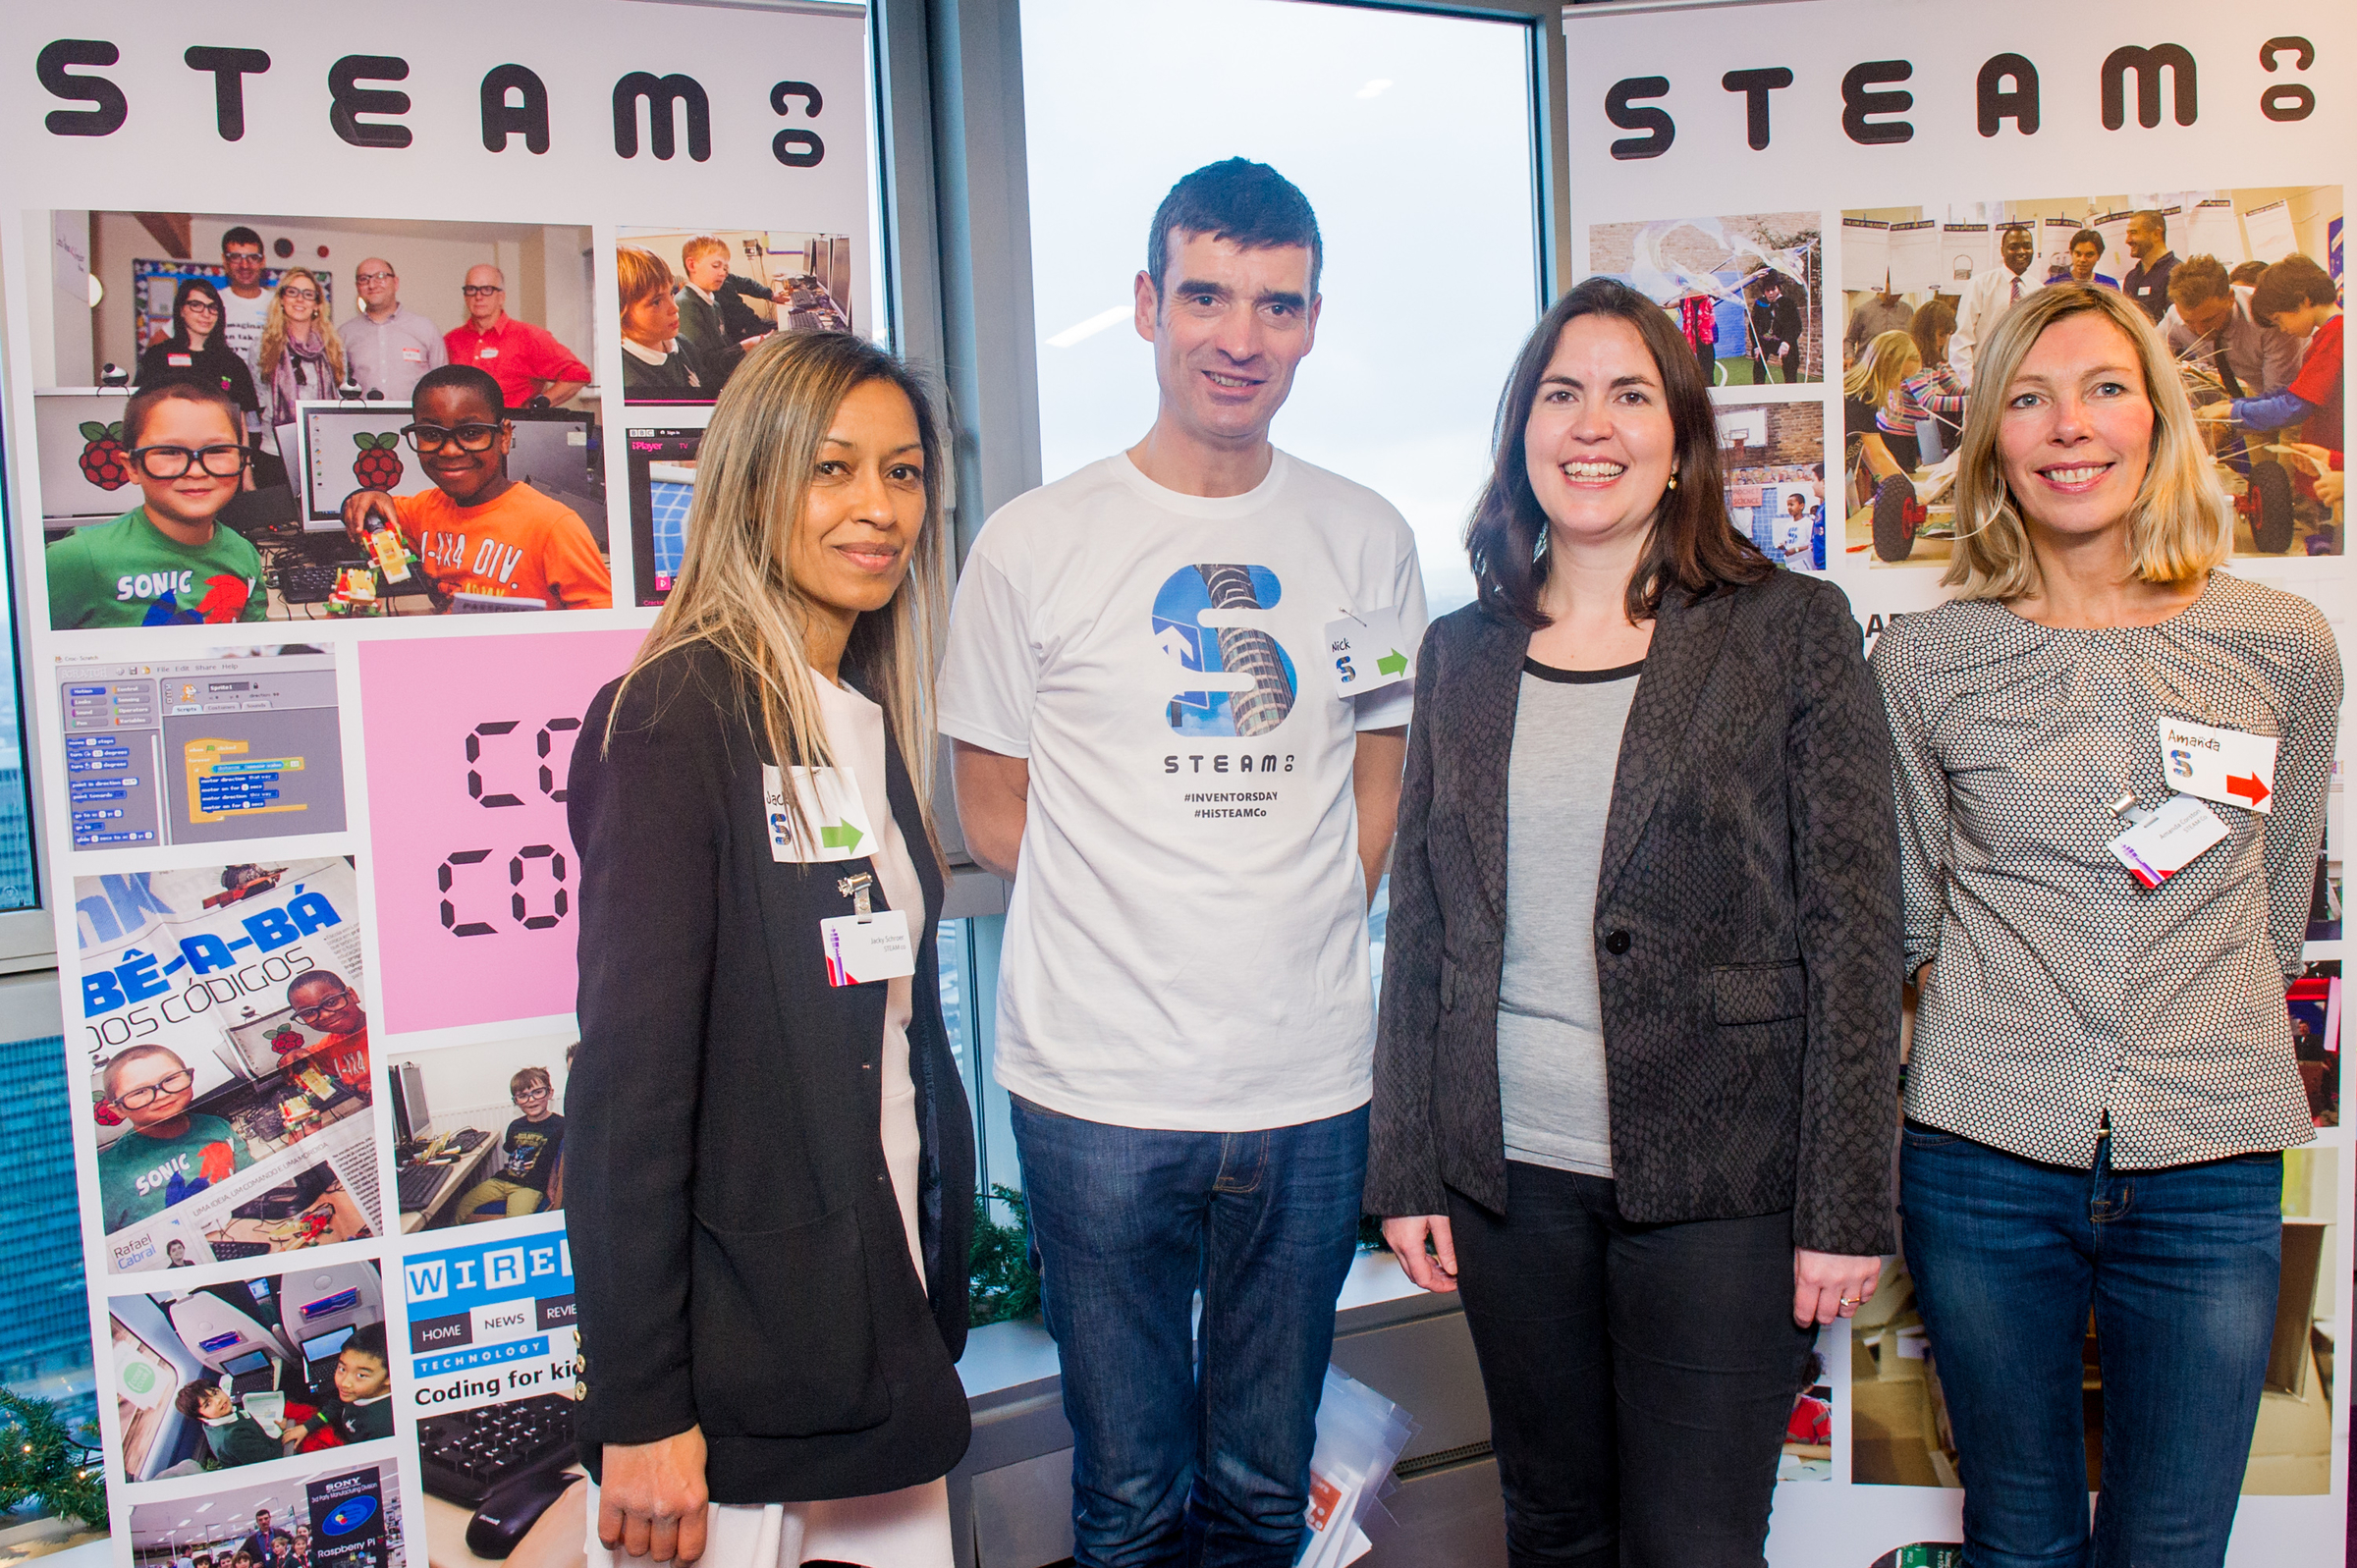 The core STEAM Co.team and co-founders (L-R), Jacky, NIck and Amanda and Suzy Christopher (2nd form right) from BT.